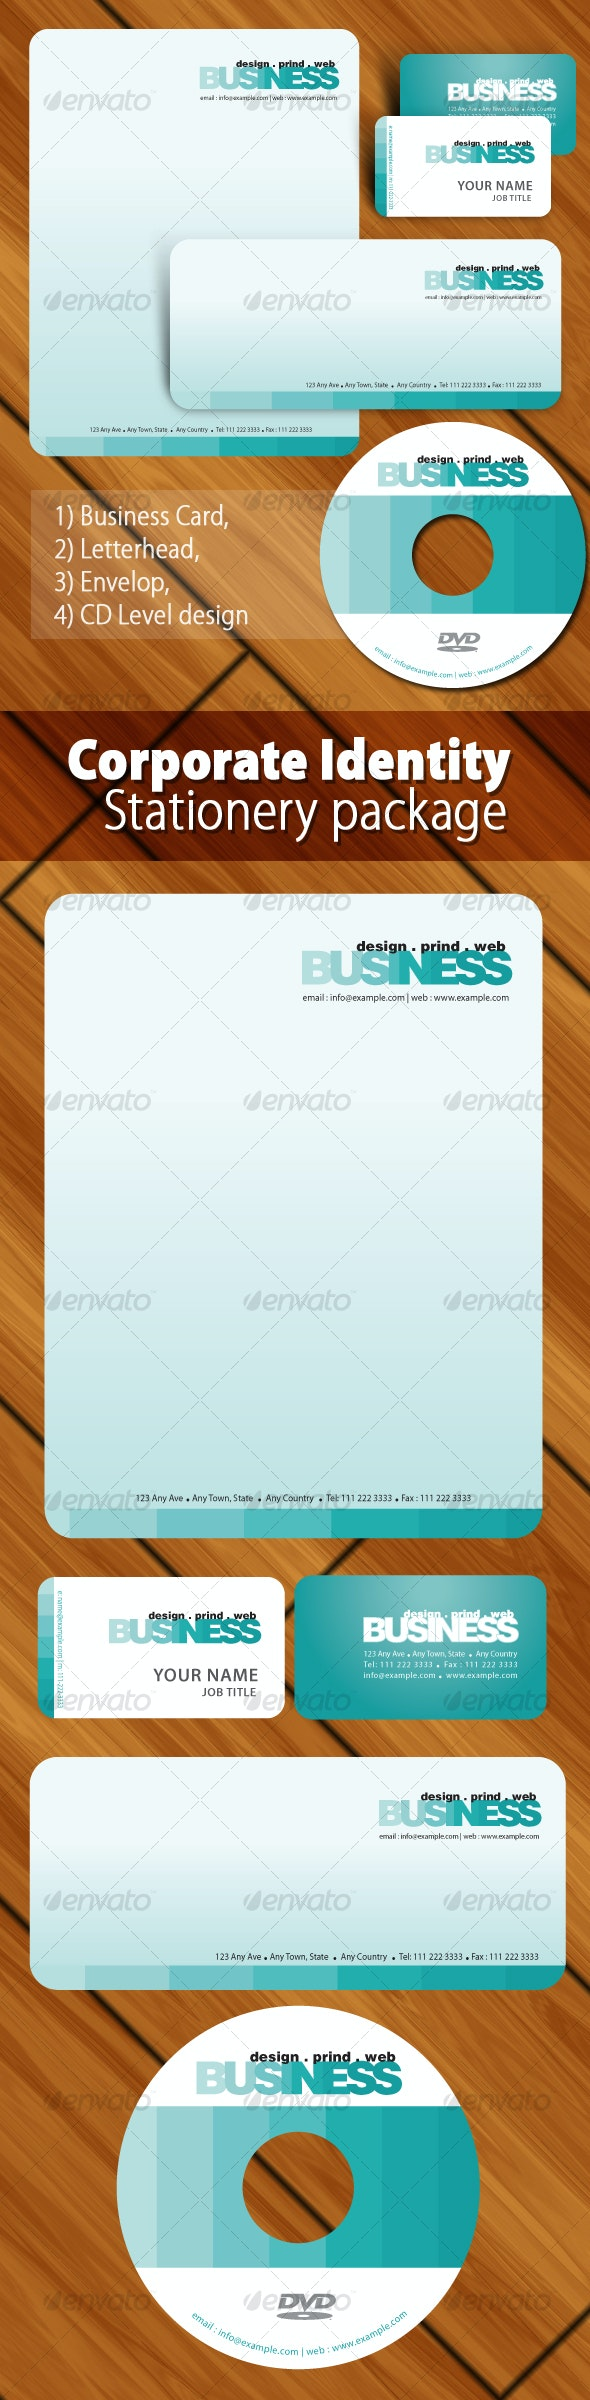 Artistic corporate identity package templates - Stationery Print Templates